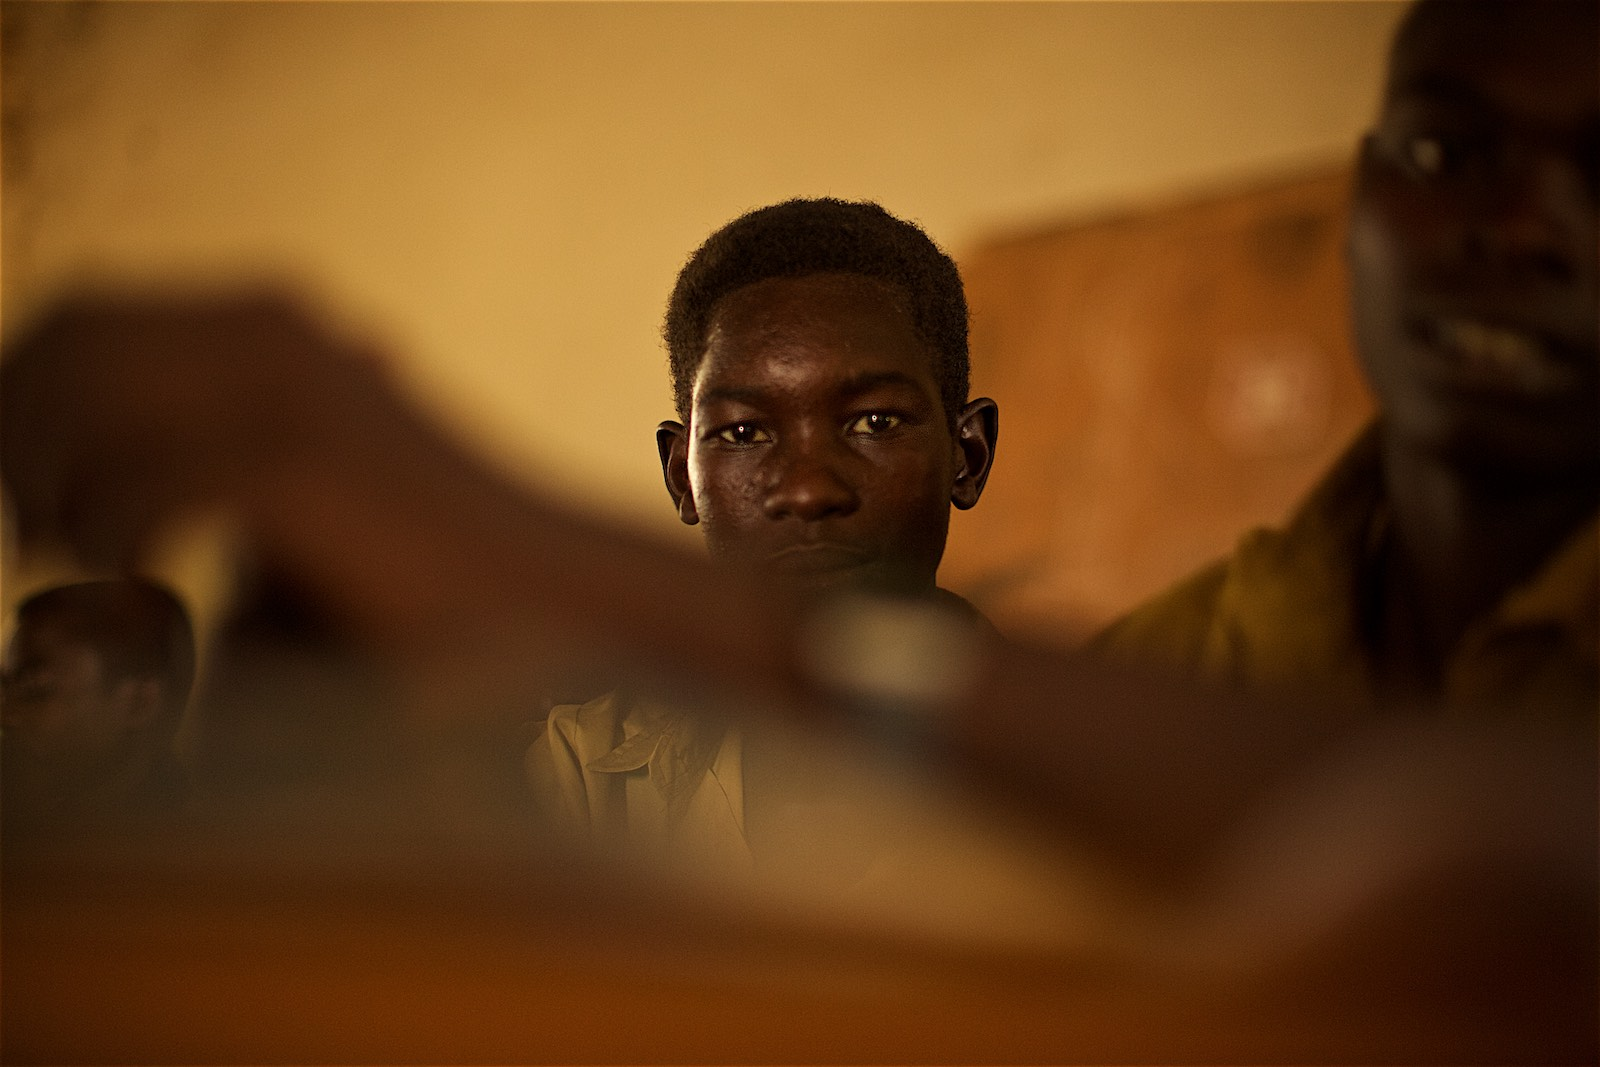 denis-bosnic-chad-school-jrs-jesuit-refugee-service-students-education-mercy-in-motion-28.jpg